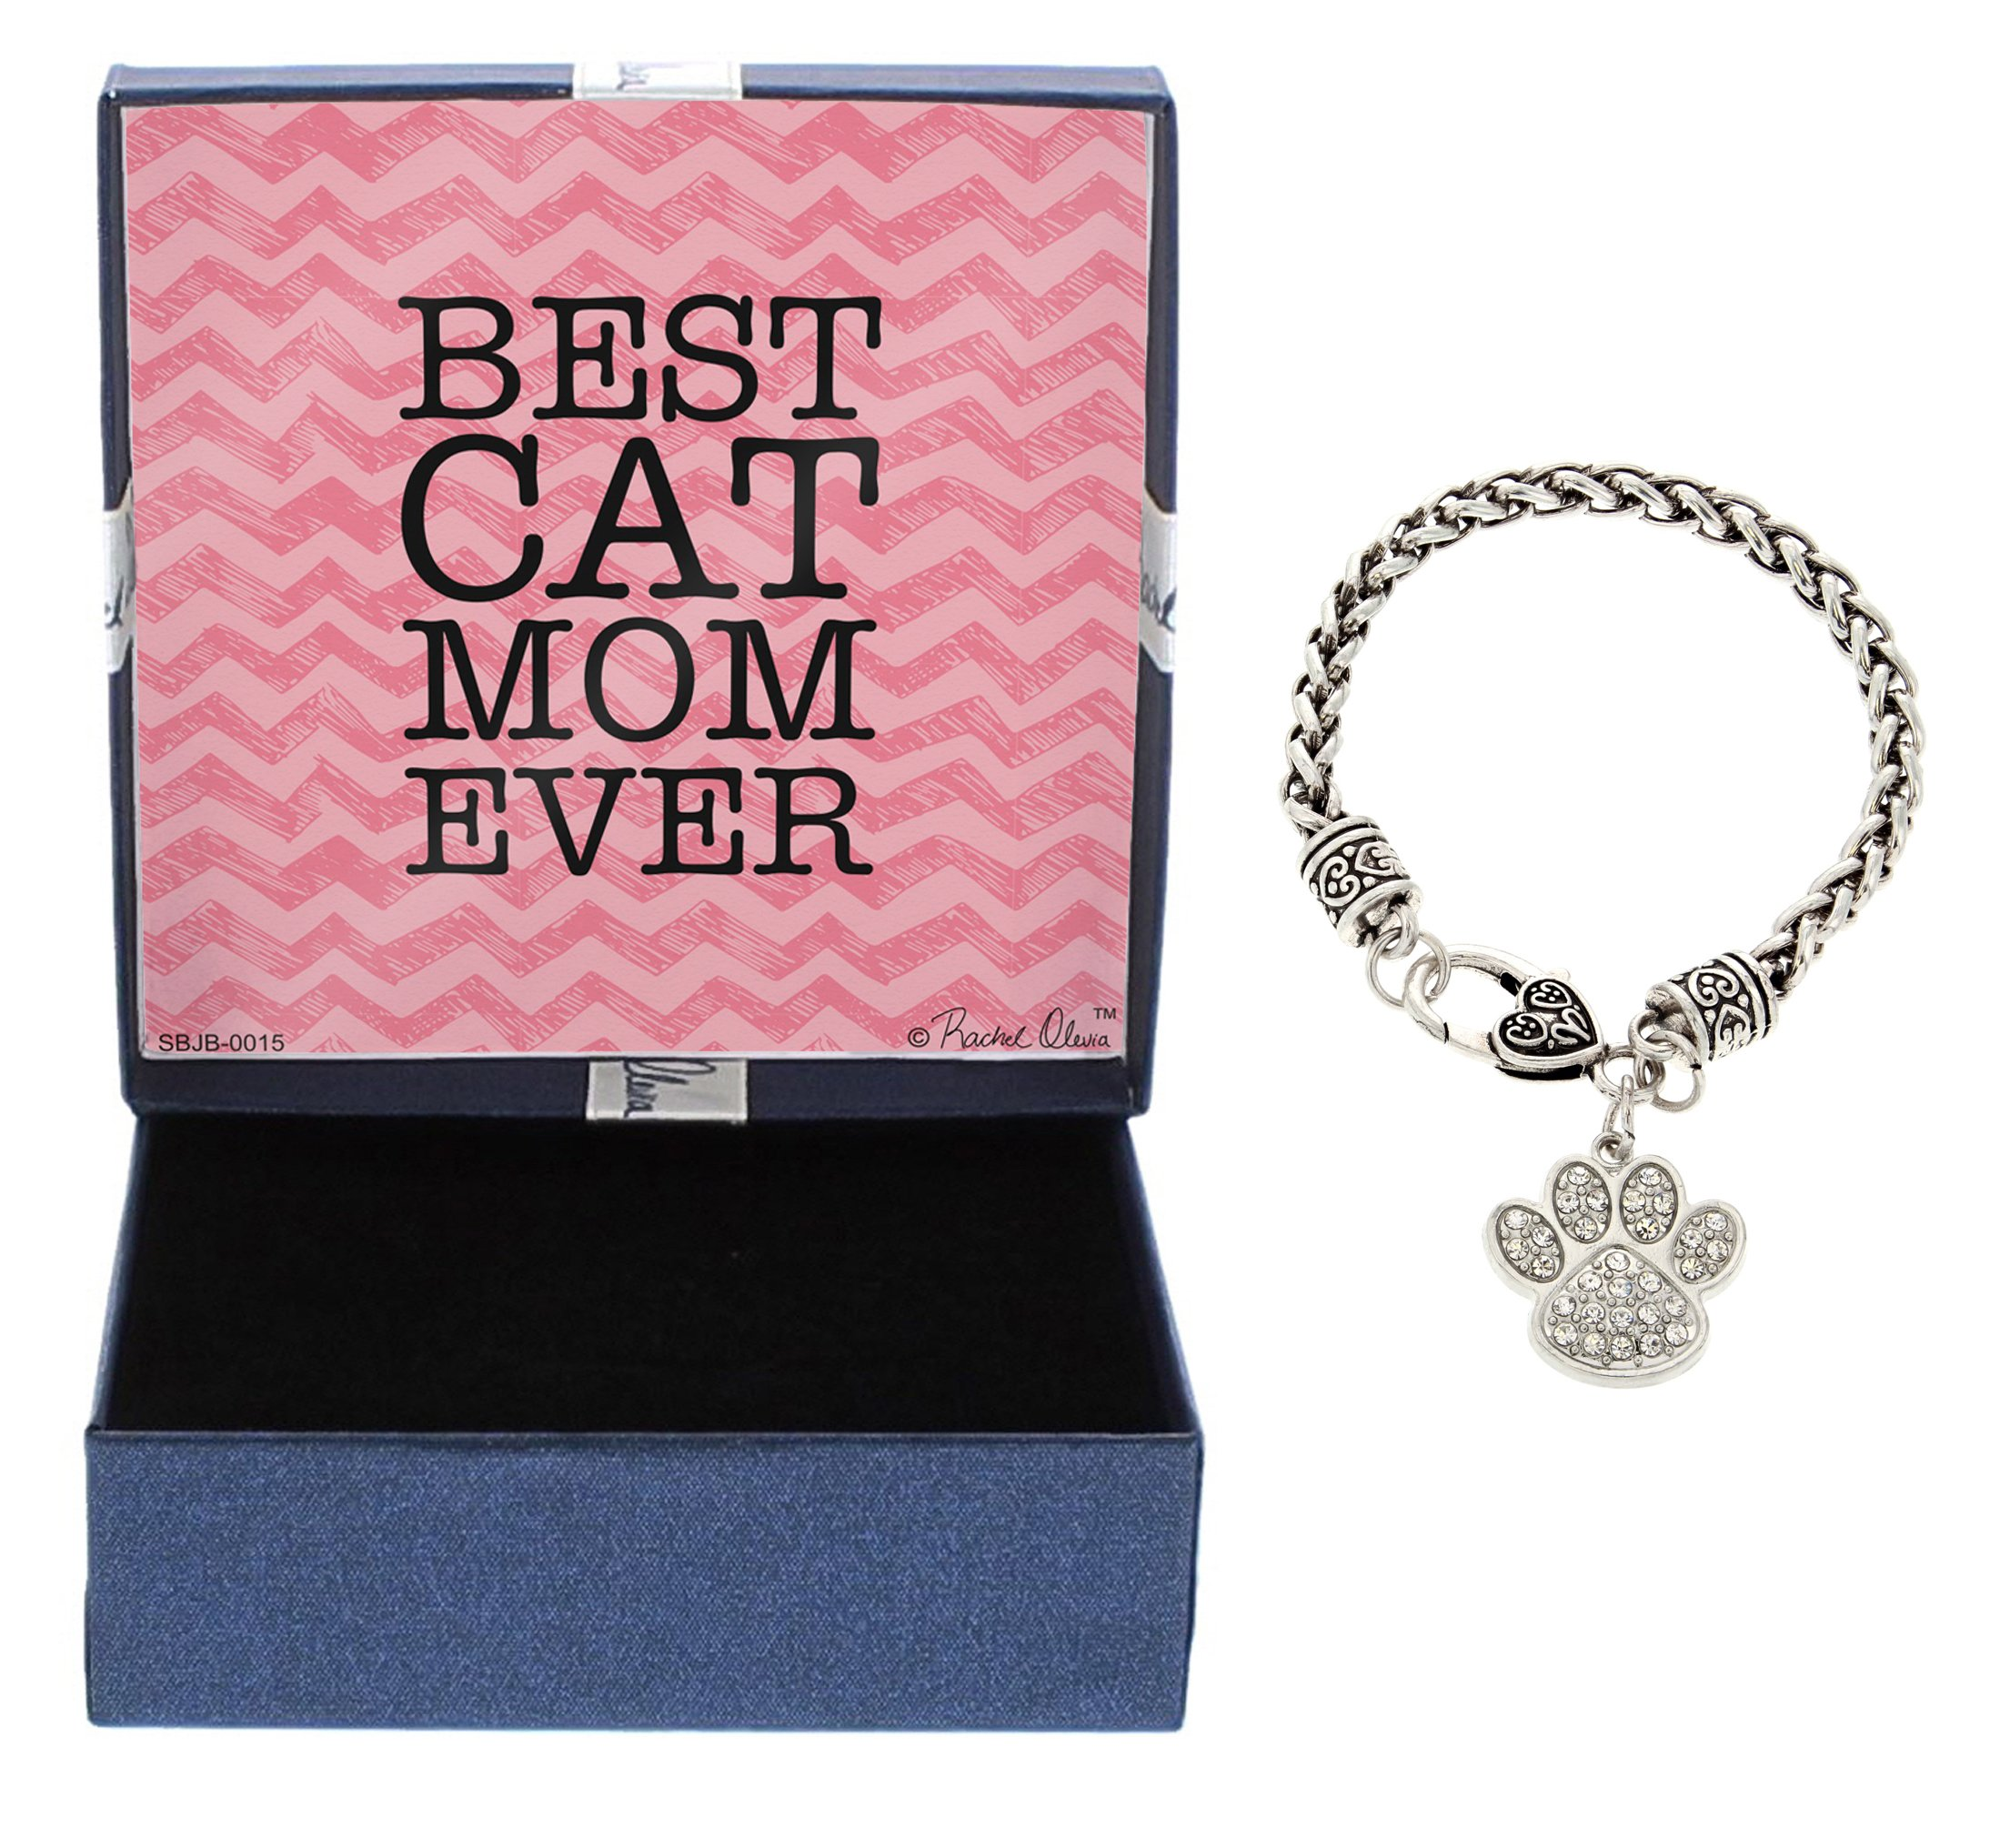 Mother's Day Gifts Best Cat Mom Ever Bracelet Silver-Tone Love Spelled with Cat Pawprint Charm Bracelet Jewelry Box Keepsake Gift for Cat Lover Gifts Crazy Cat Lady Bracelet